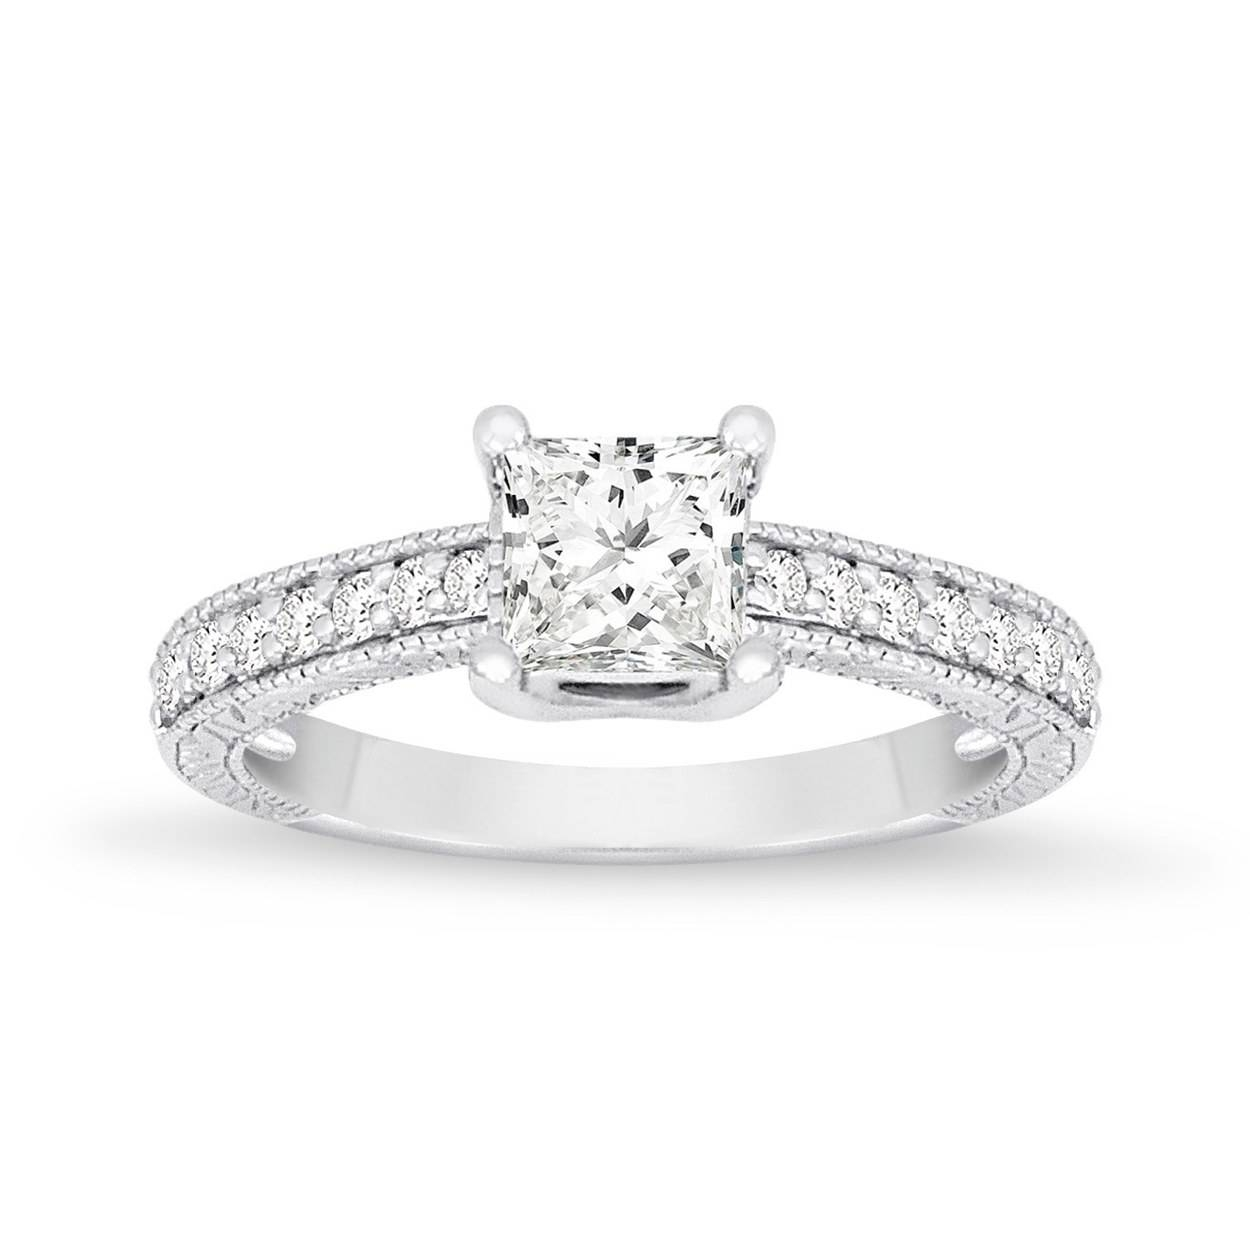 62 Diamond Engagement Rings Under $5,000 | Glamour Pertaining To Princess Engagement Rings (View 1 of 15)